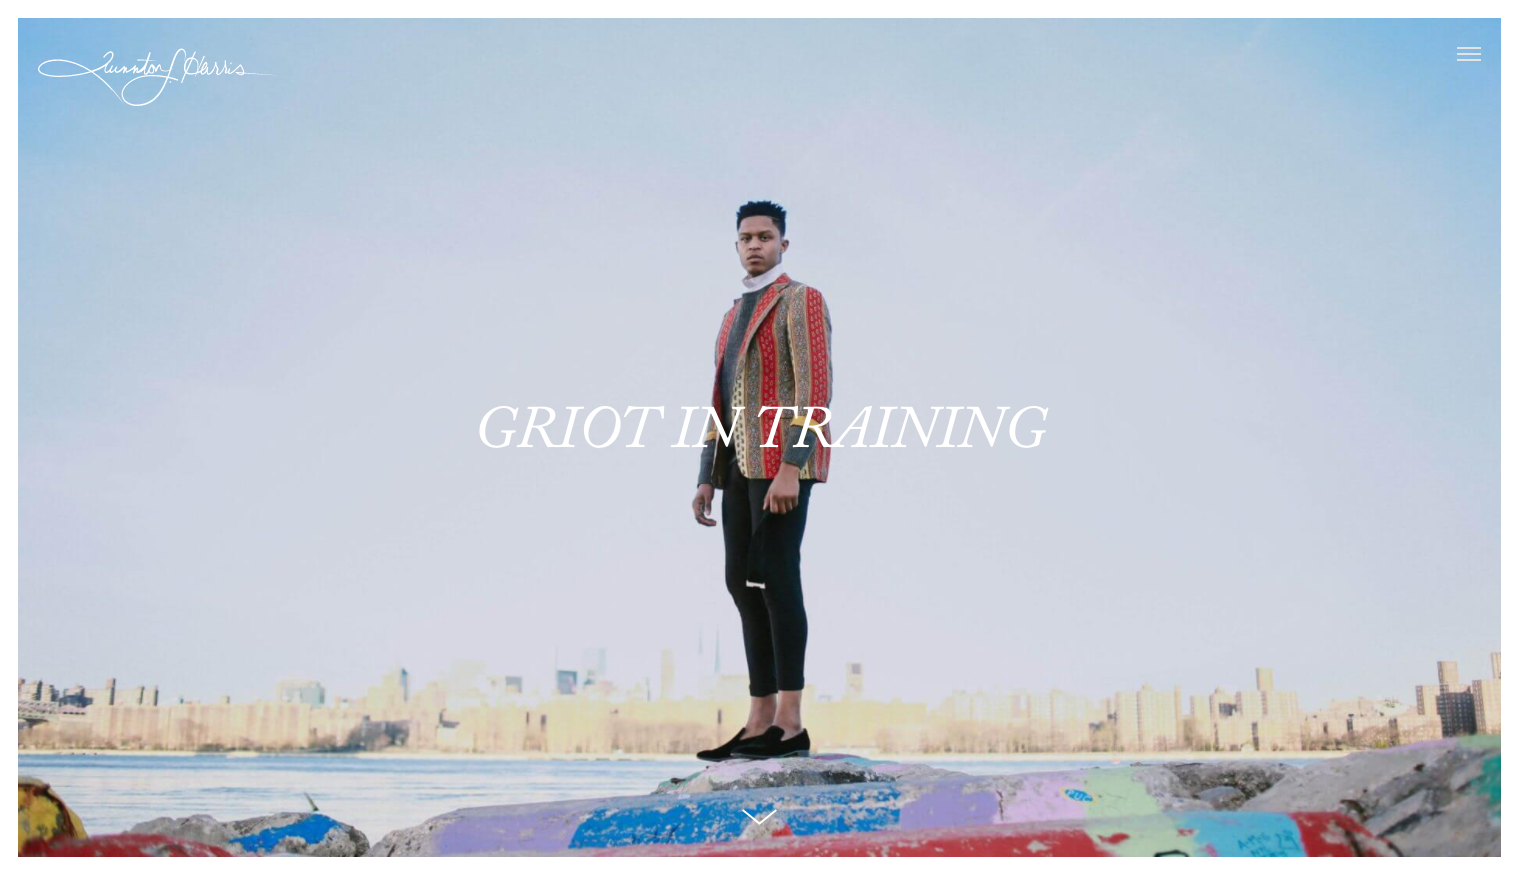 Website homepage of Quinton Harris that says 'Griot in Training' across the front